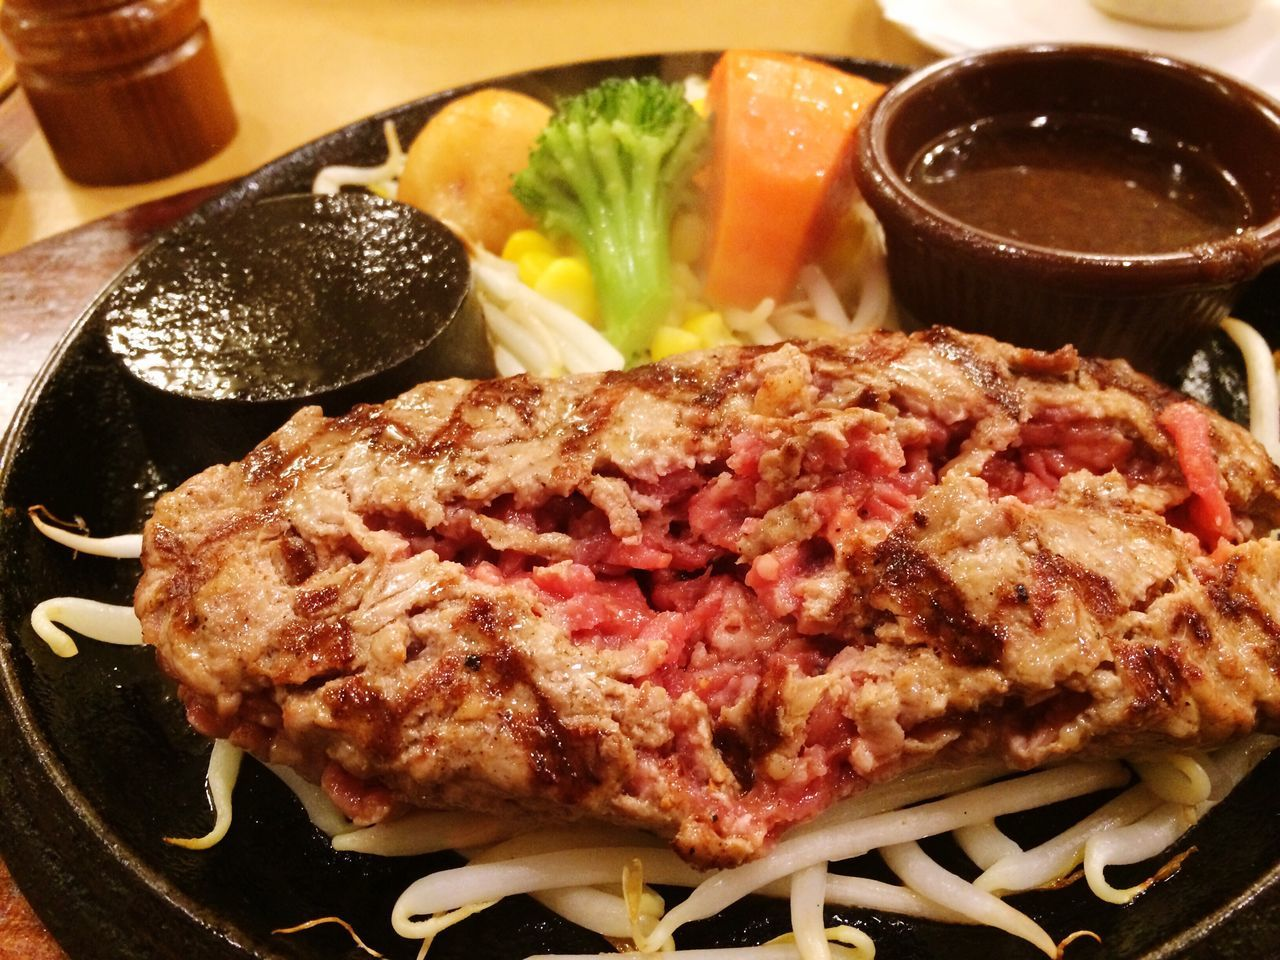 ハンバーグ 千葉県 Hamburger Steak Hamburger Hamburg Steak Chiba,Japan Chiba Food Foodphotography Food Photography